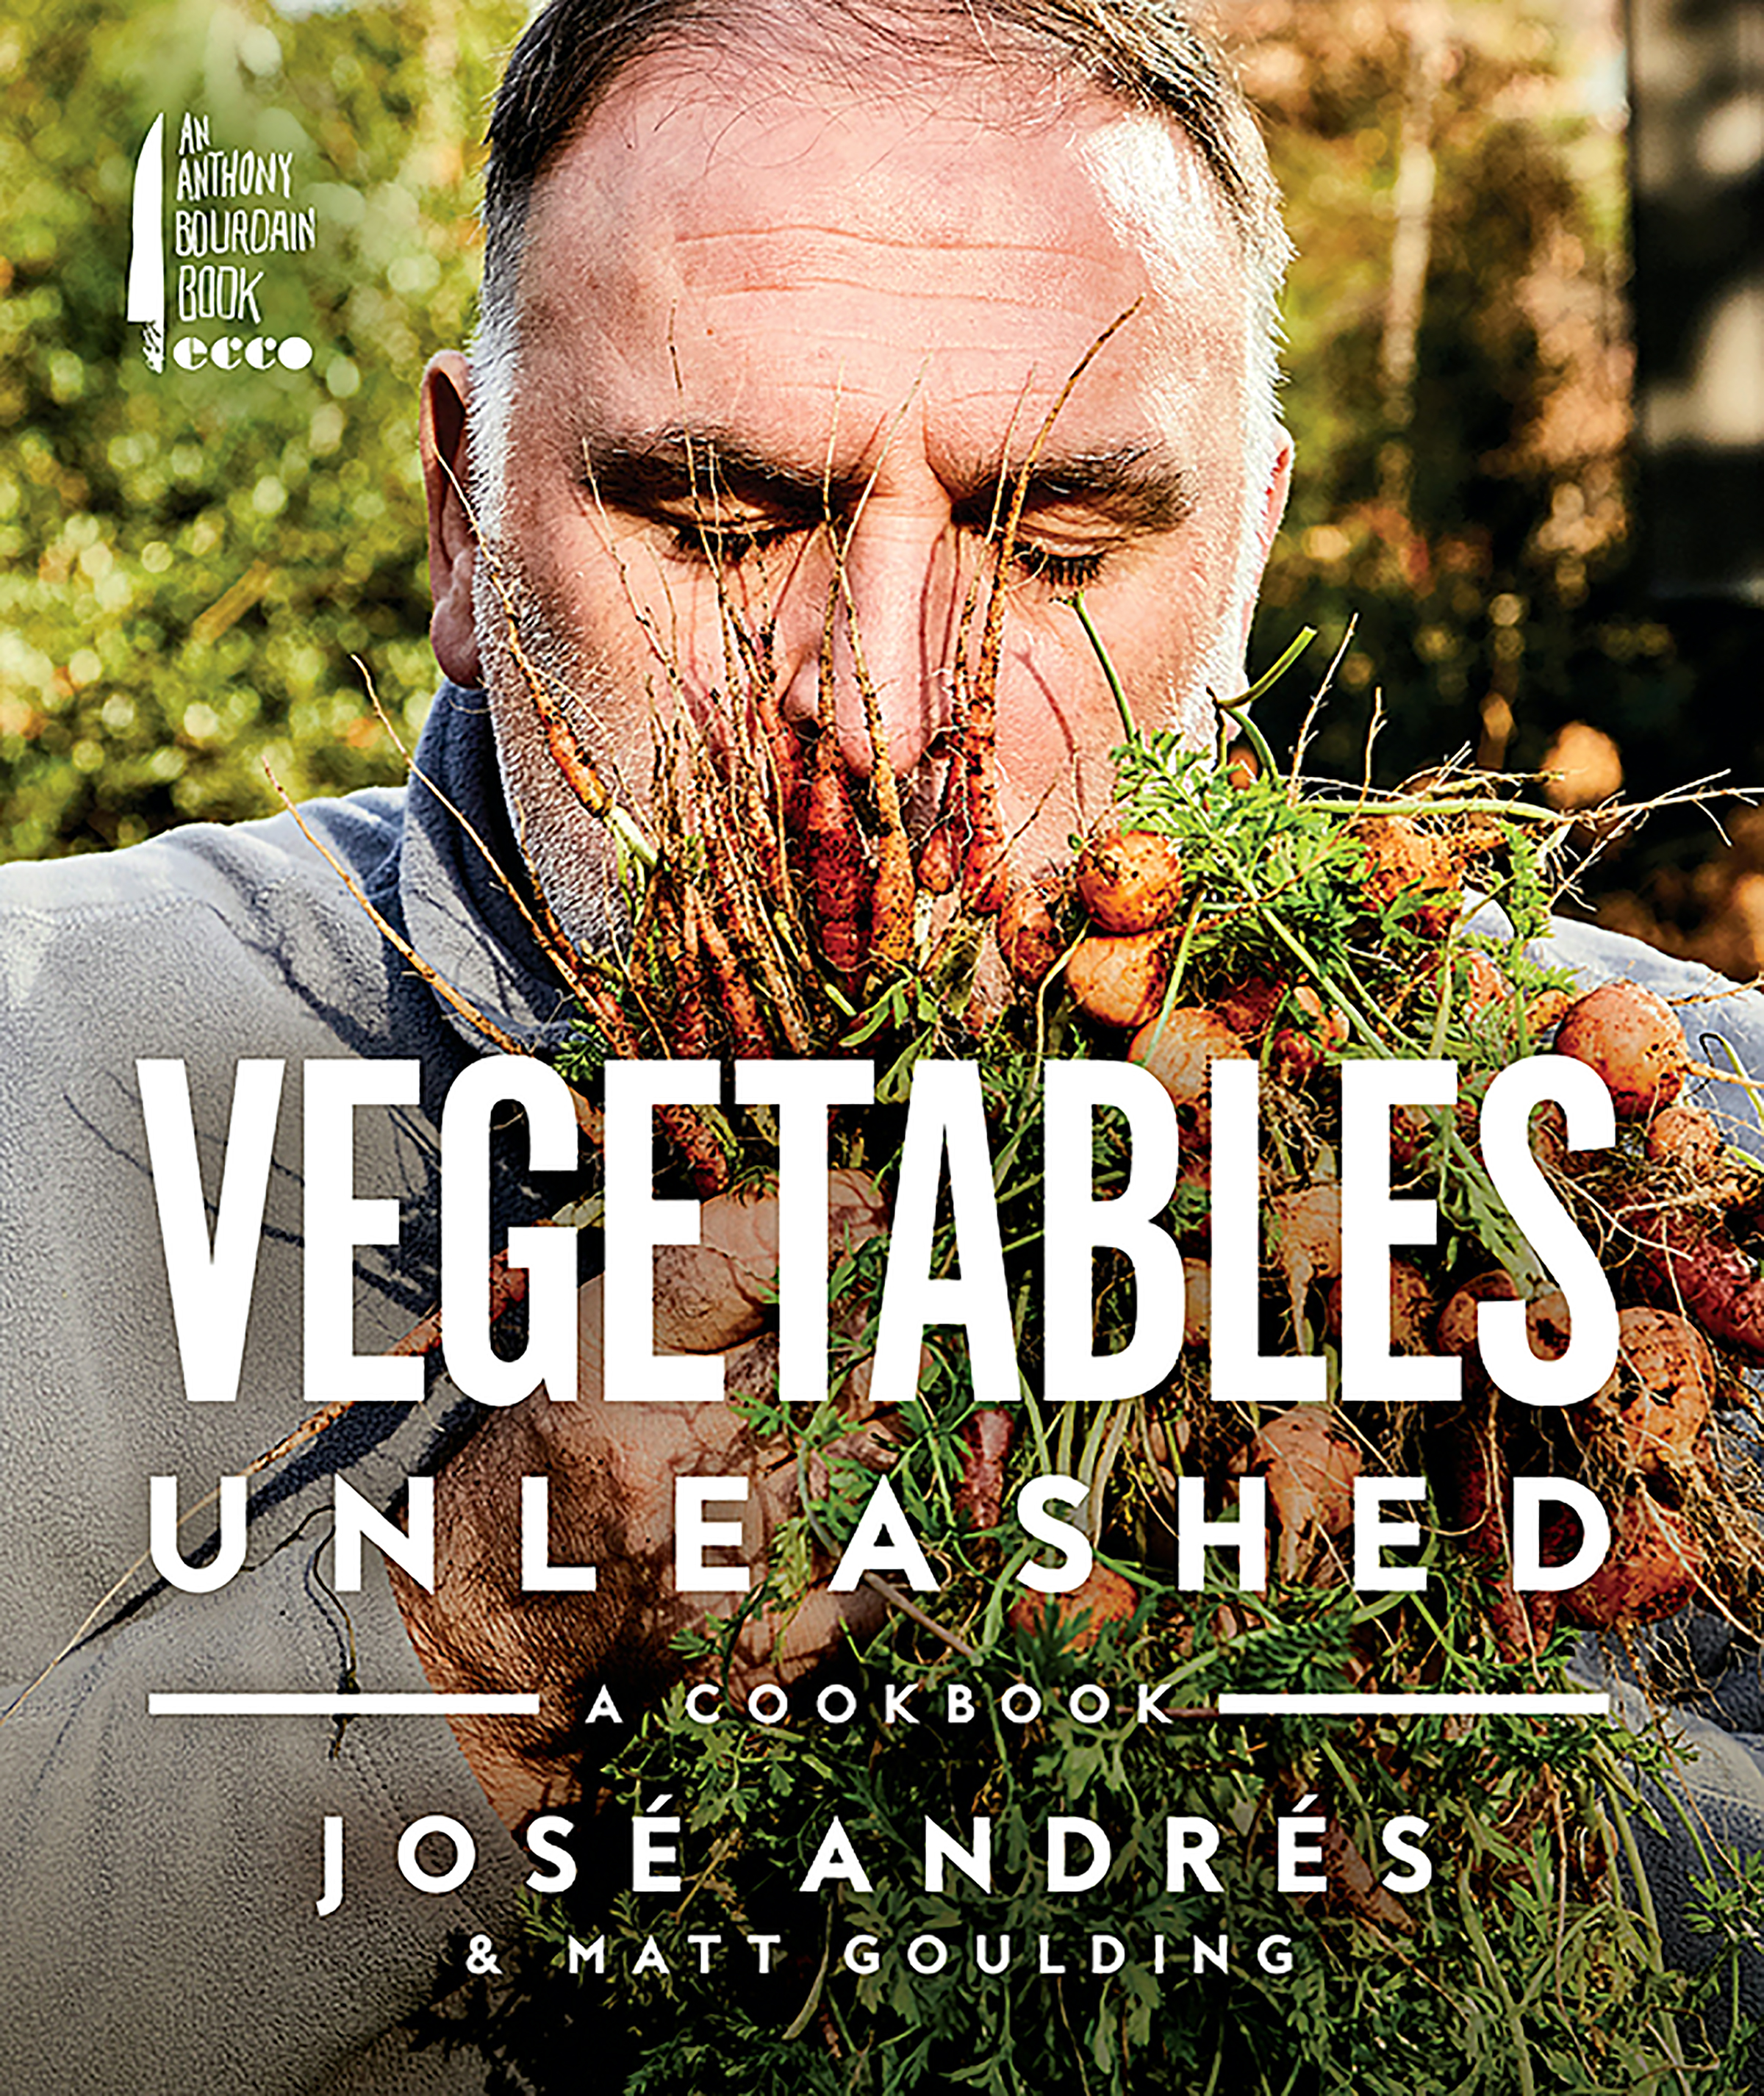 Photograph of Vegetables Unleashed courtesy of Anthony Bourdain Books/Ecco